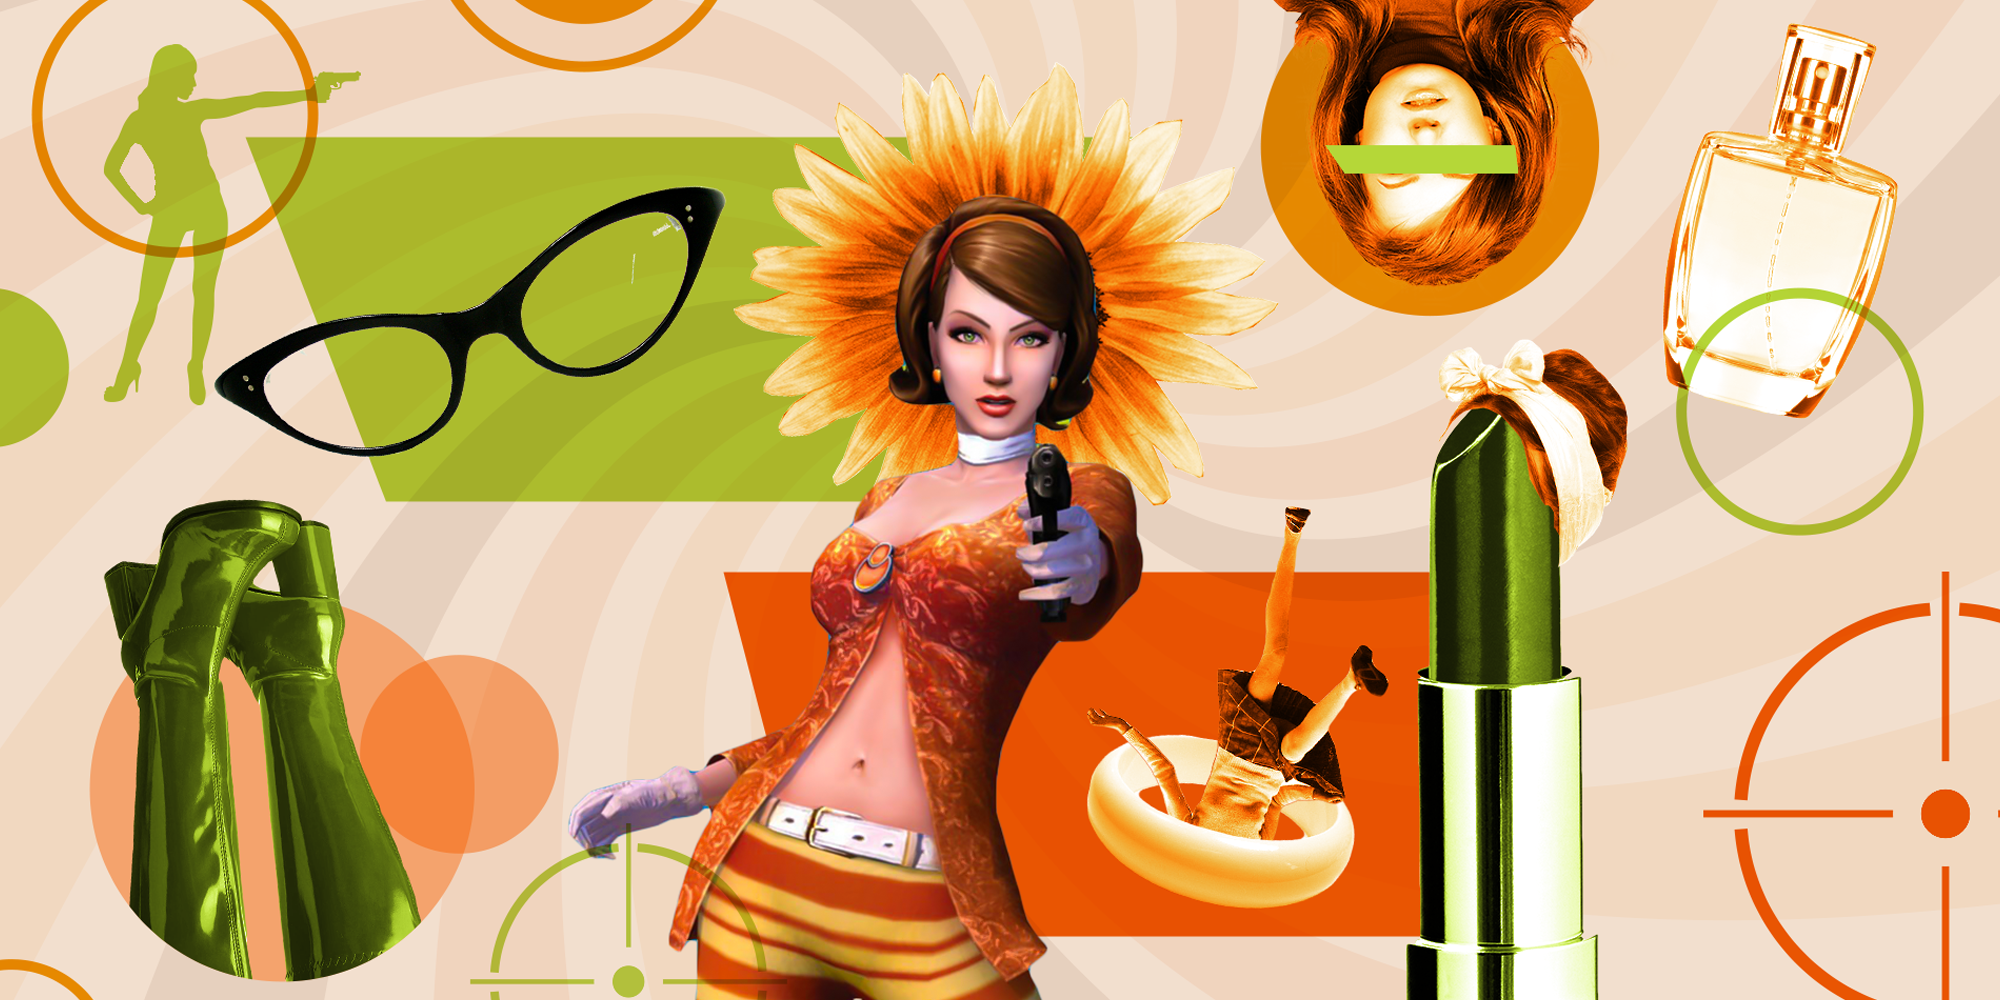 No One Lives Forever's '60s Mod Aesthetic Was An Absolute Masterpiece